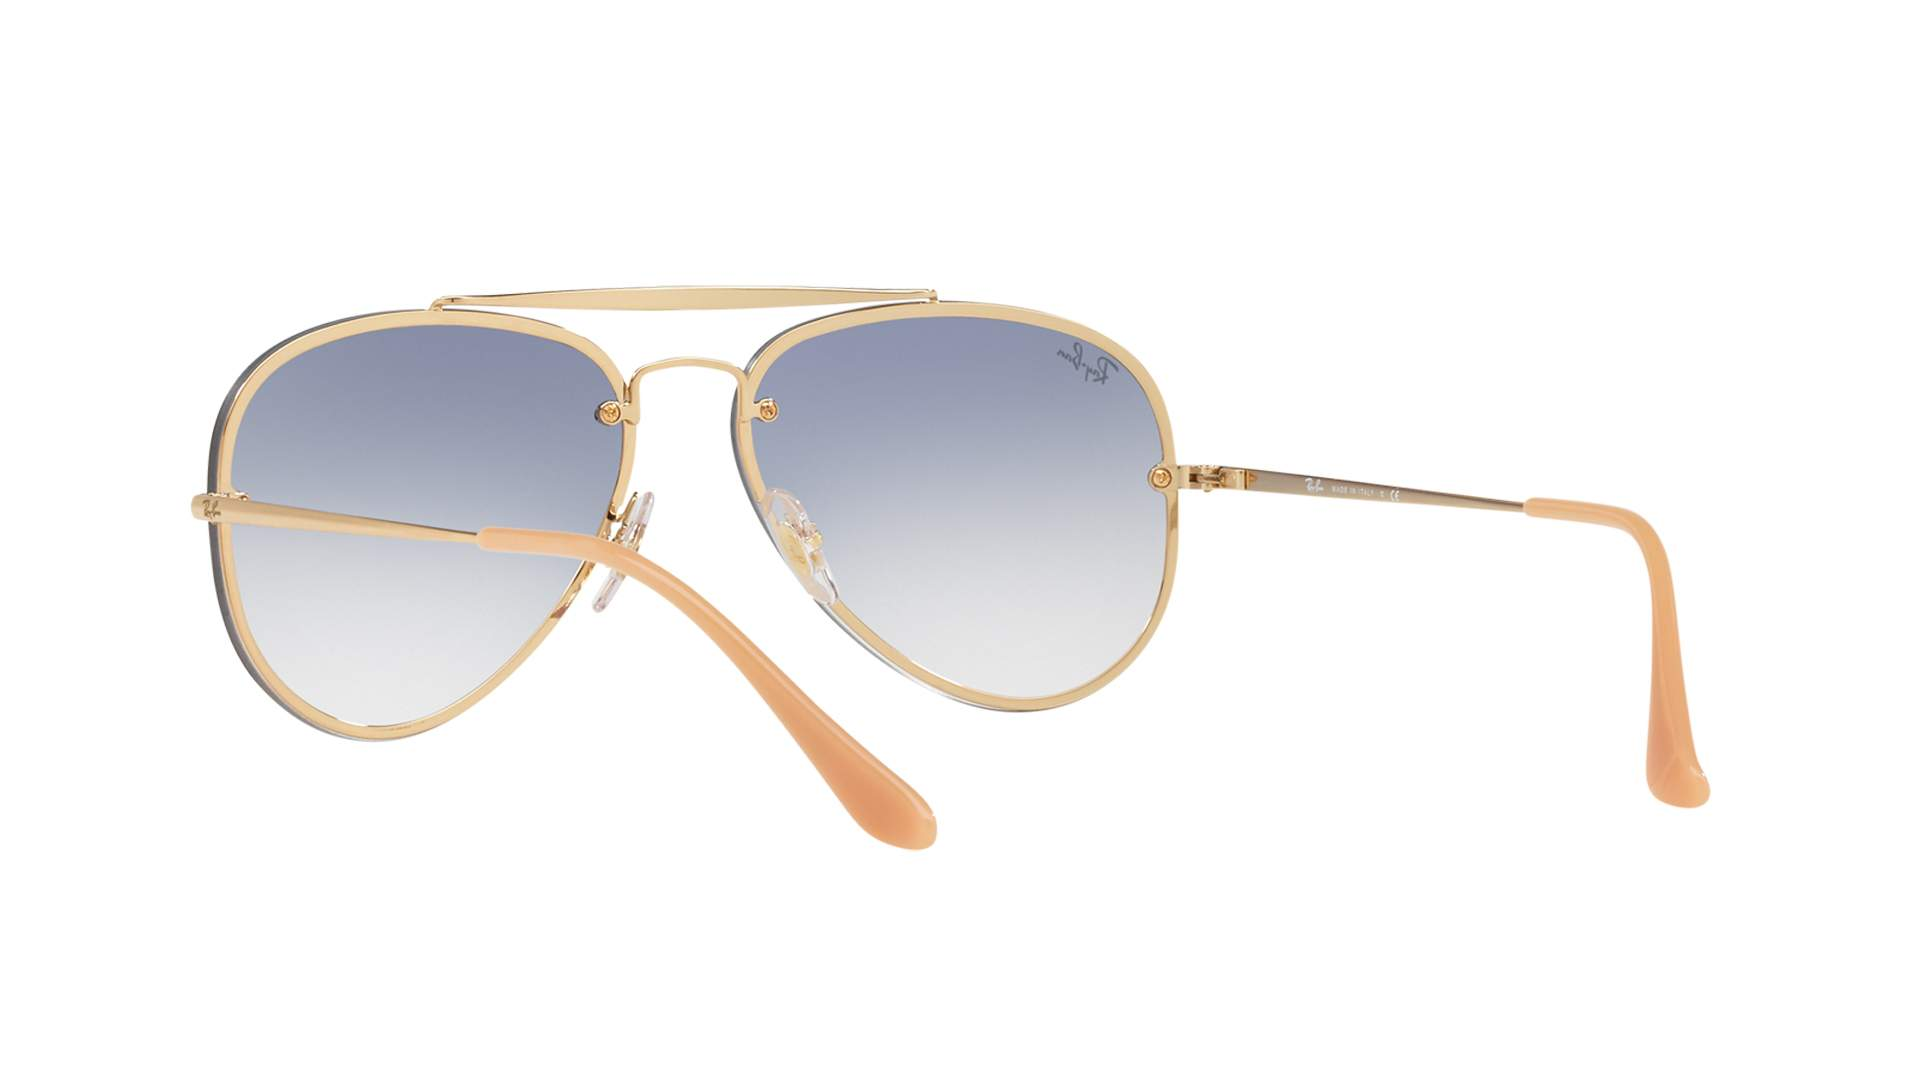 Sunglasses Ray-Ban Blaze Aviator Gold RB3584N 001 19 58-13 Medium Gradient e04d899a47